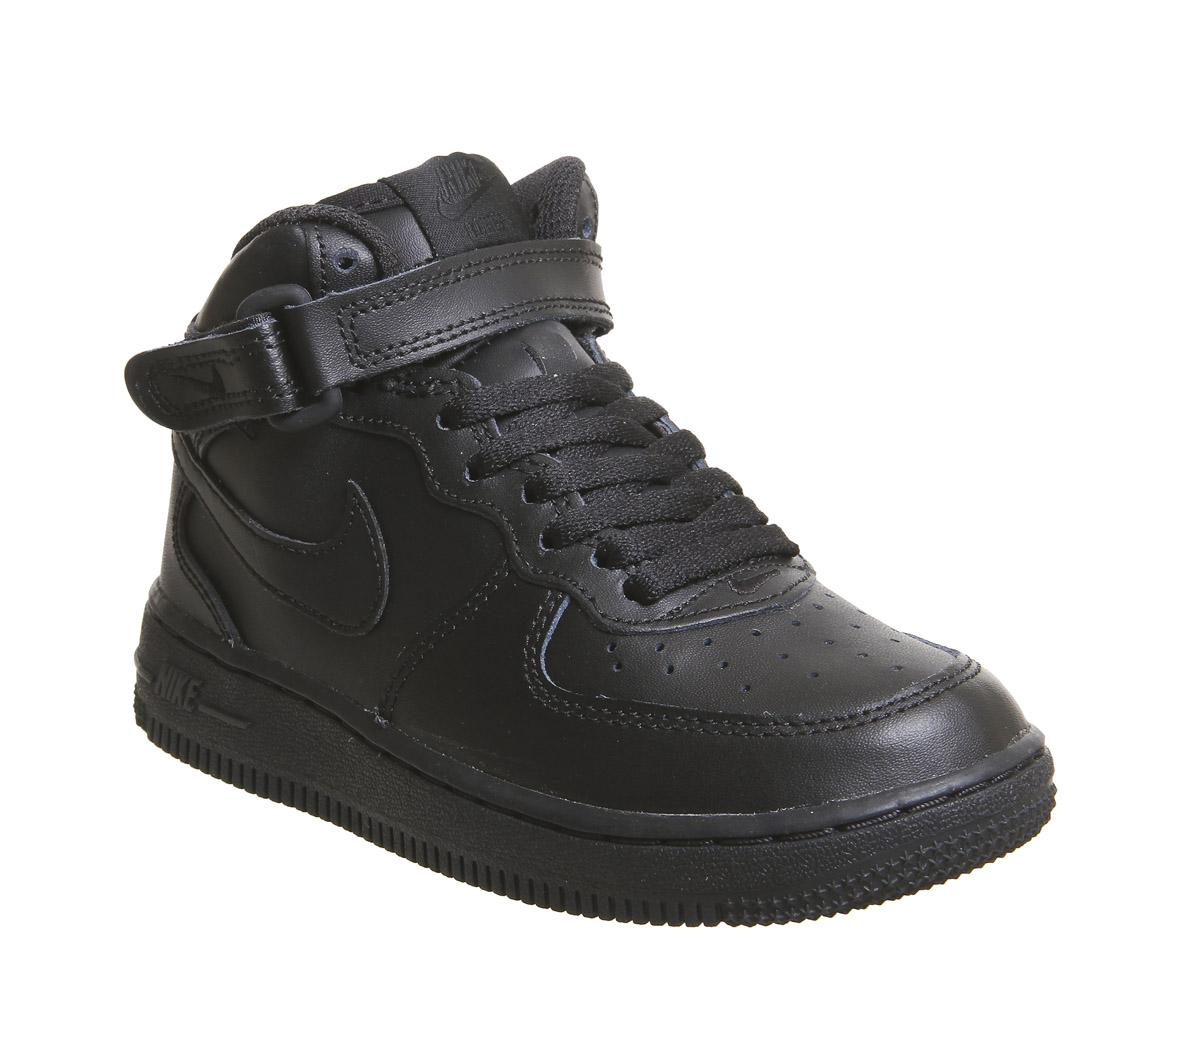 Af1 Mid Ps Trainers